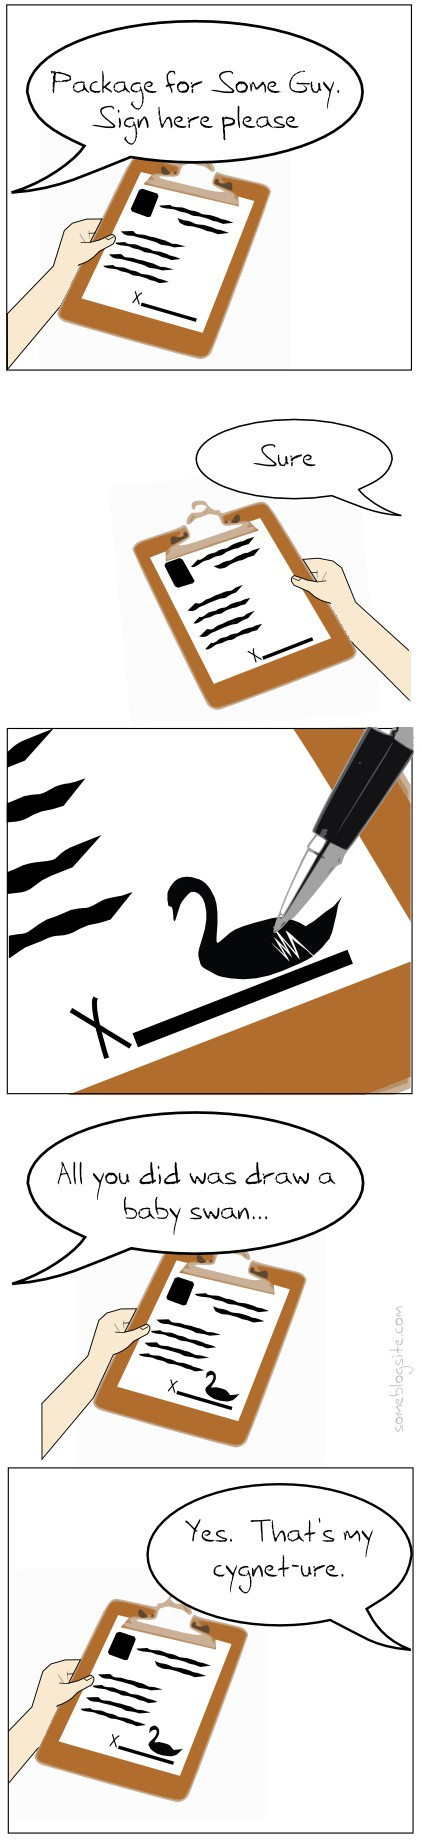 comic about signing your name by drawing a baby swan as a cygneture